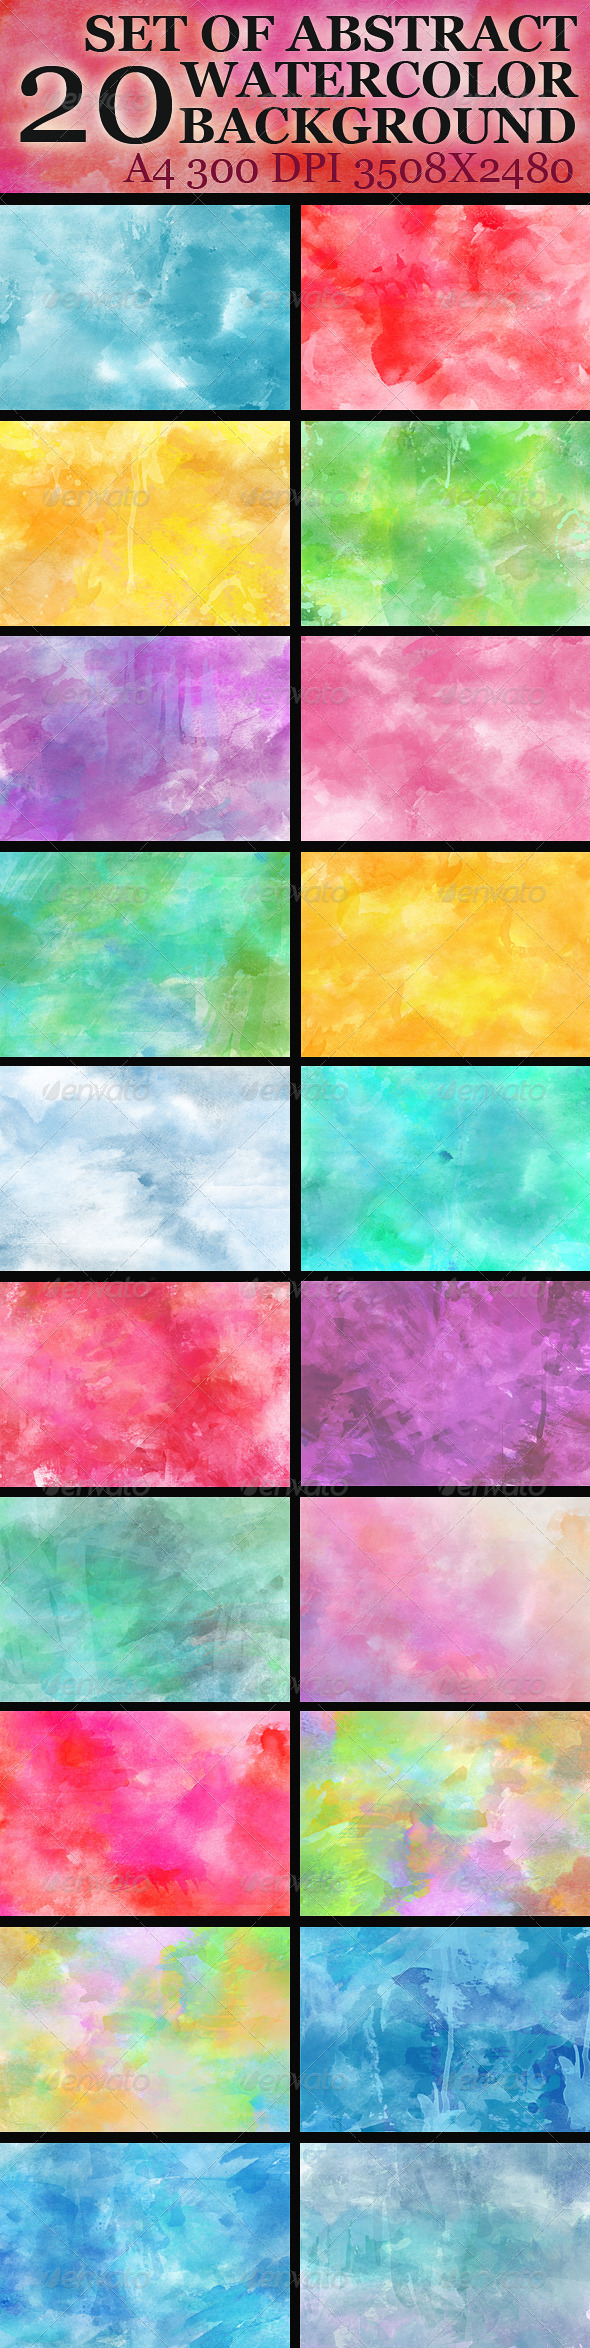 GraphicRiver Set of 20 abstract watercolor background 4927980